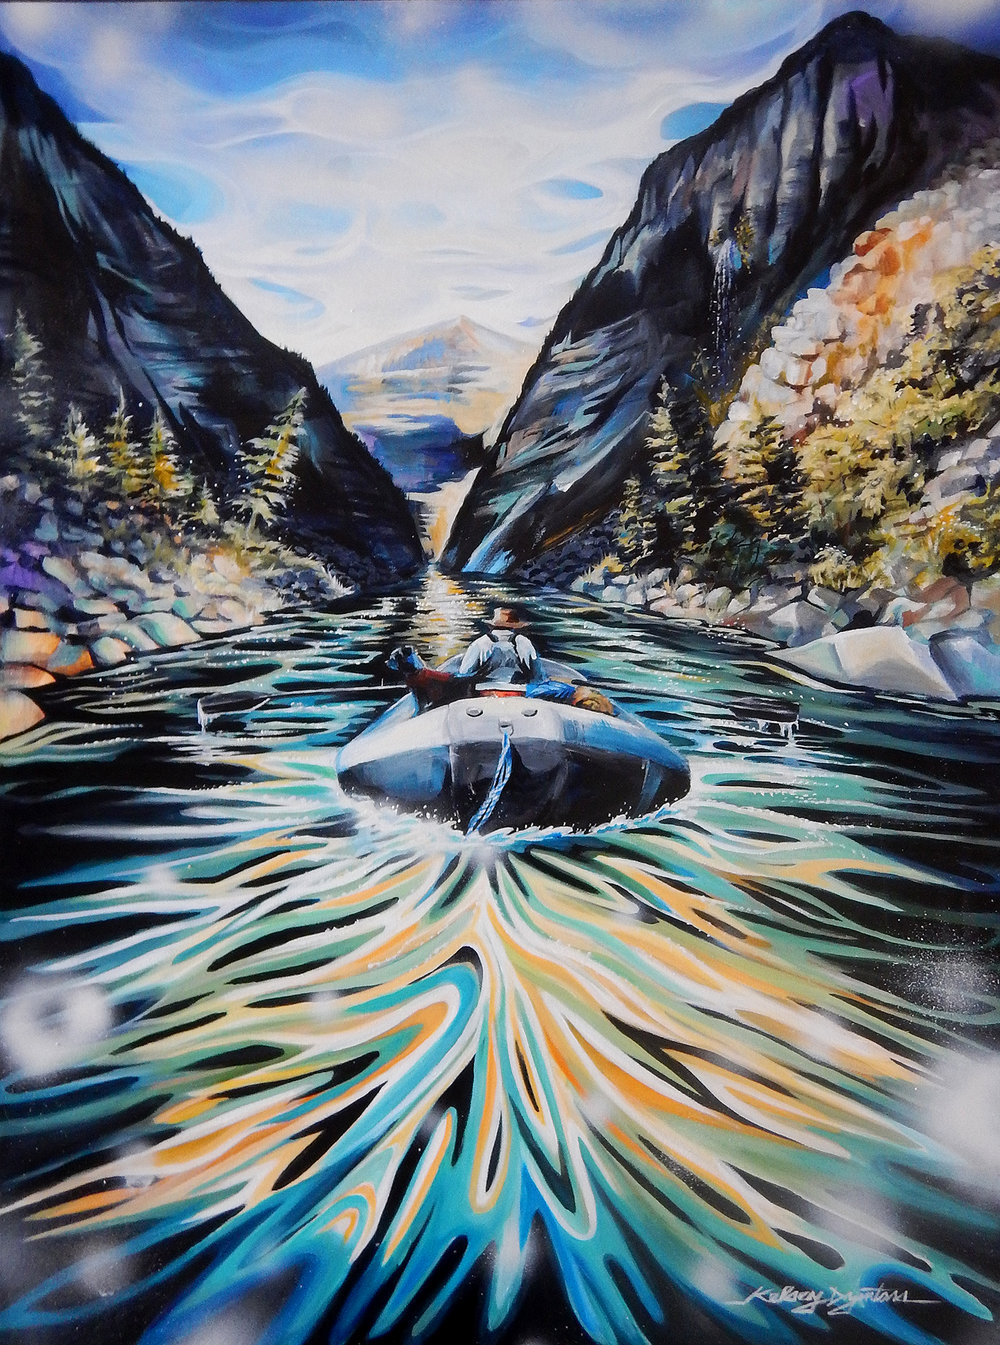 """The Impassable Canyon"" acrylic, 30x40 2016 - Commission/NFS"